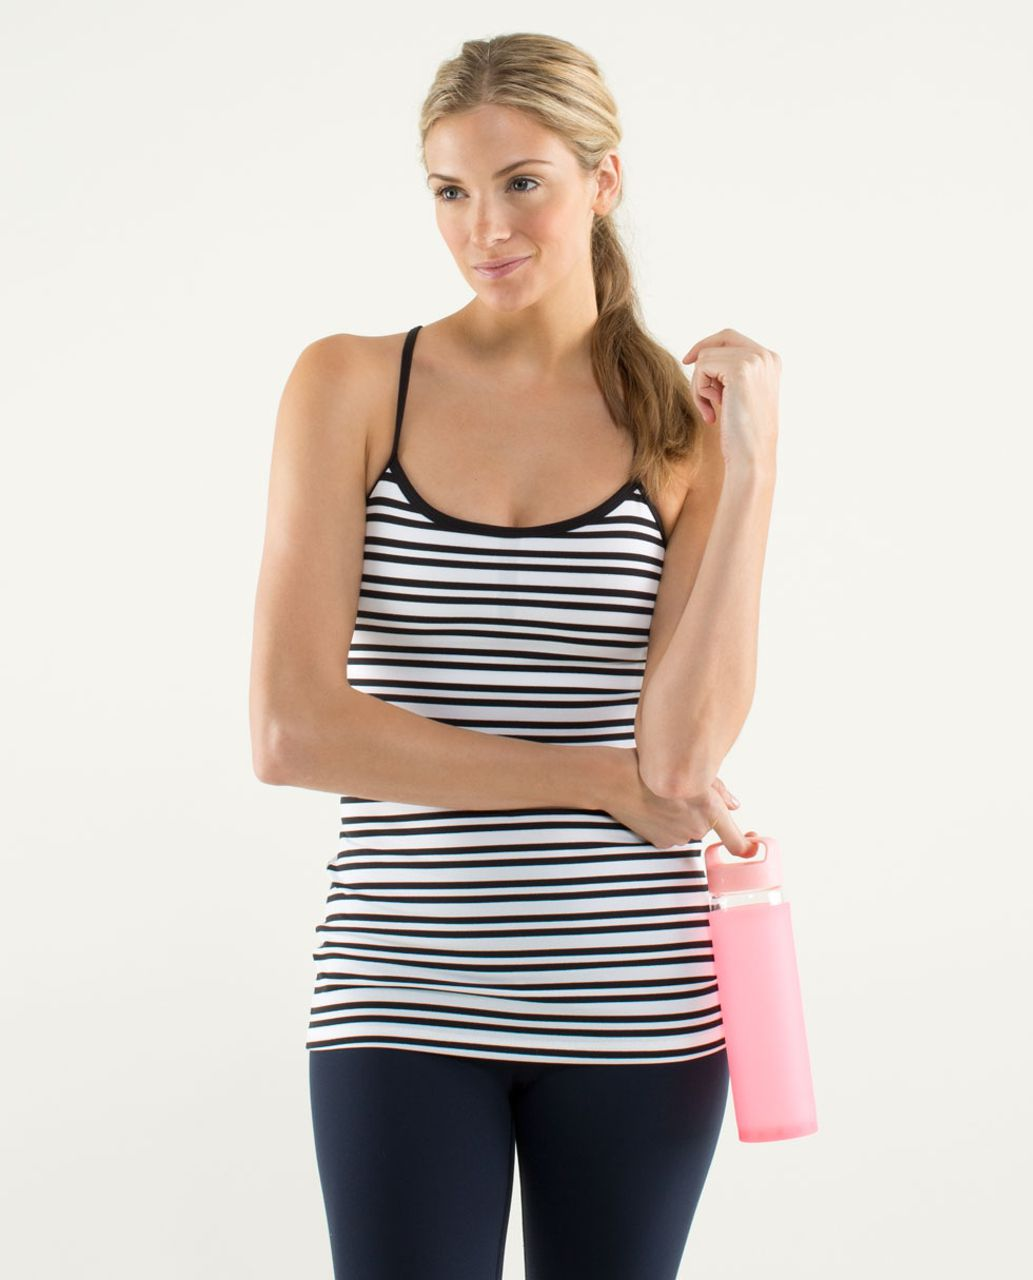 Lululemon Power Y Tank *Luon Light - Twin Stripe Black / Black